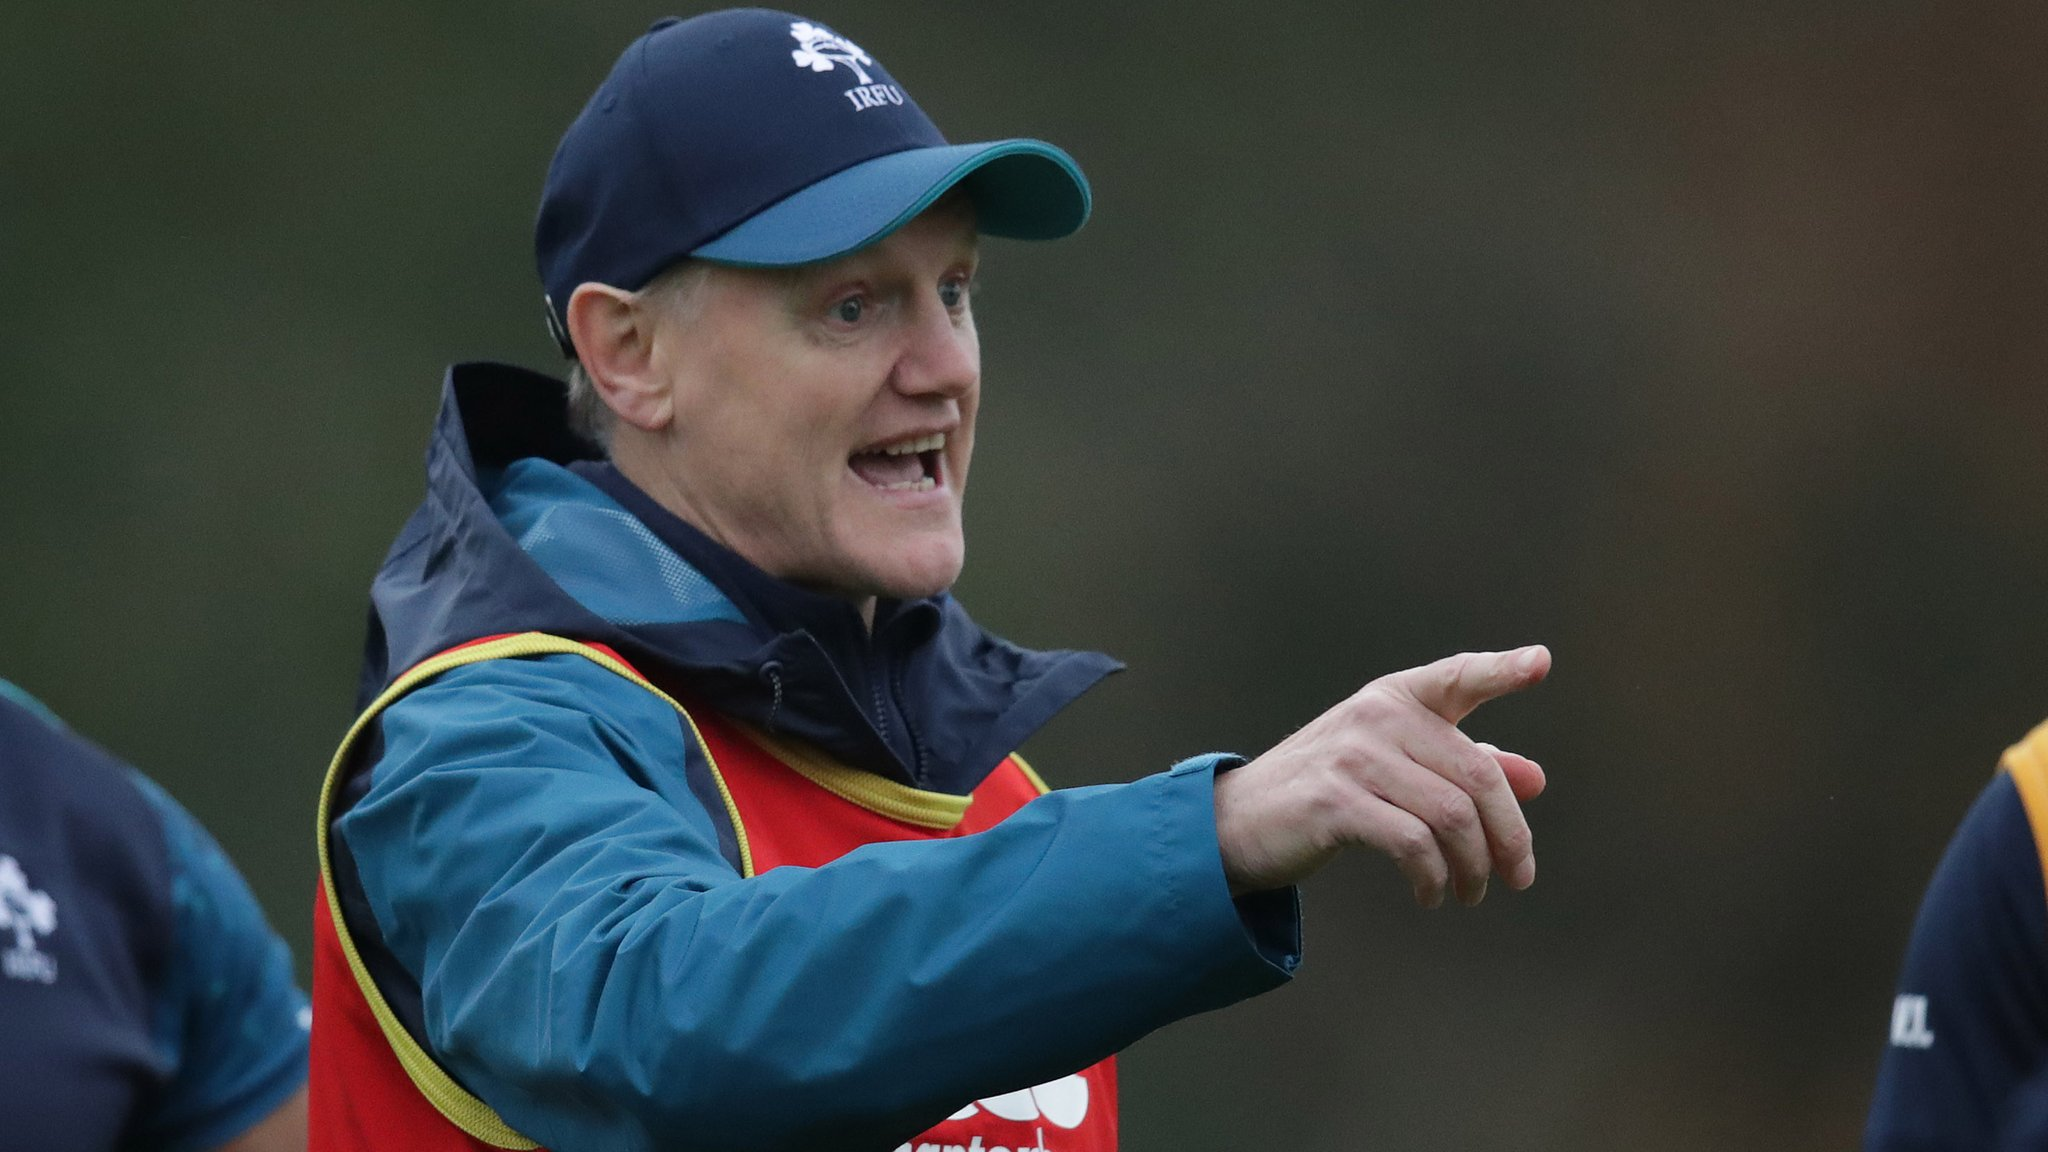 Joe Schmidt: Out-going coach's lasting legacy on Irish rugby